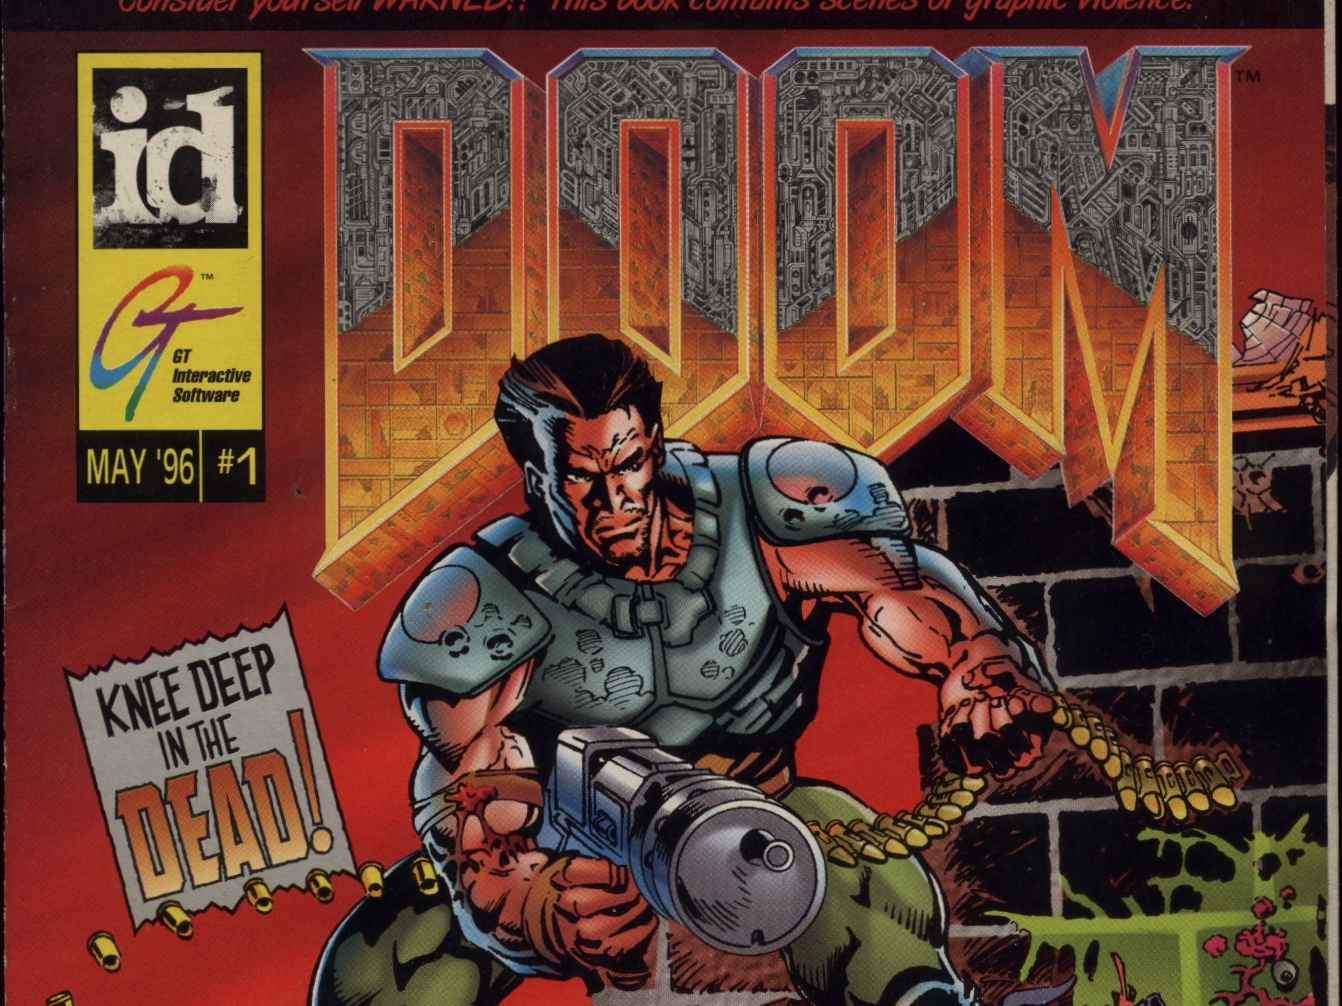 Doom Game Wallpaper 70 Images: Backgrounds - Wallpaper Abyss